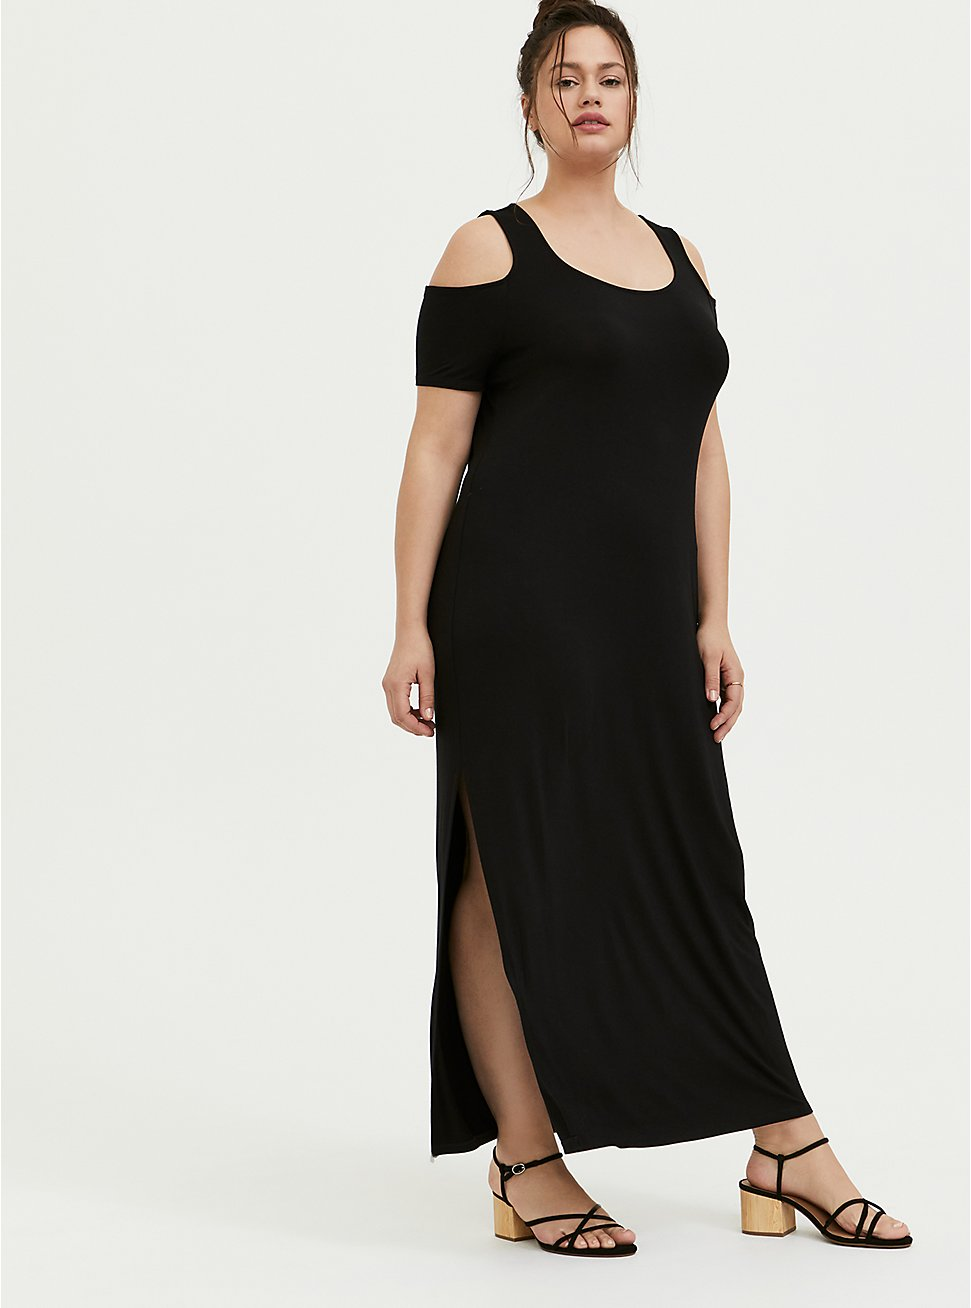 Super Soft Black Cold Shoulder Maxi Dress, , hi-res